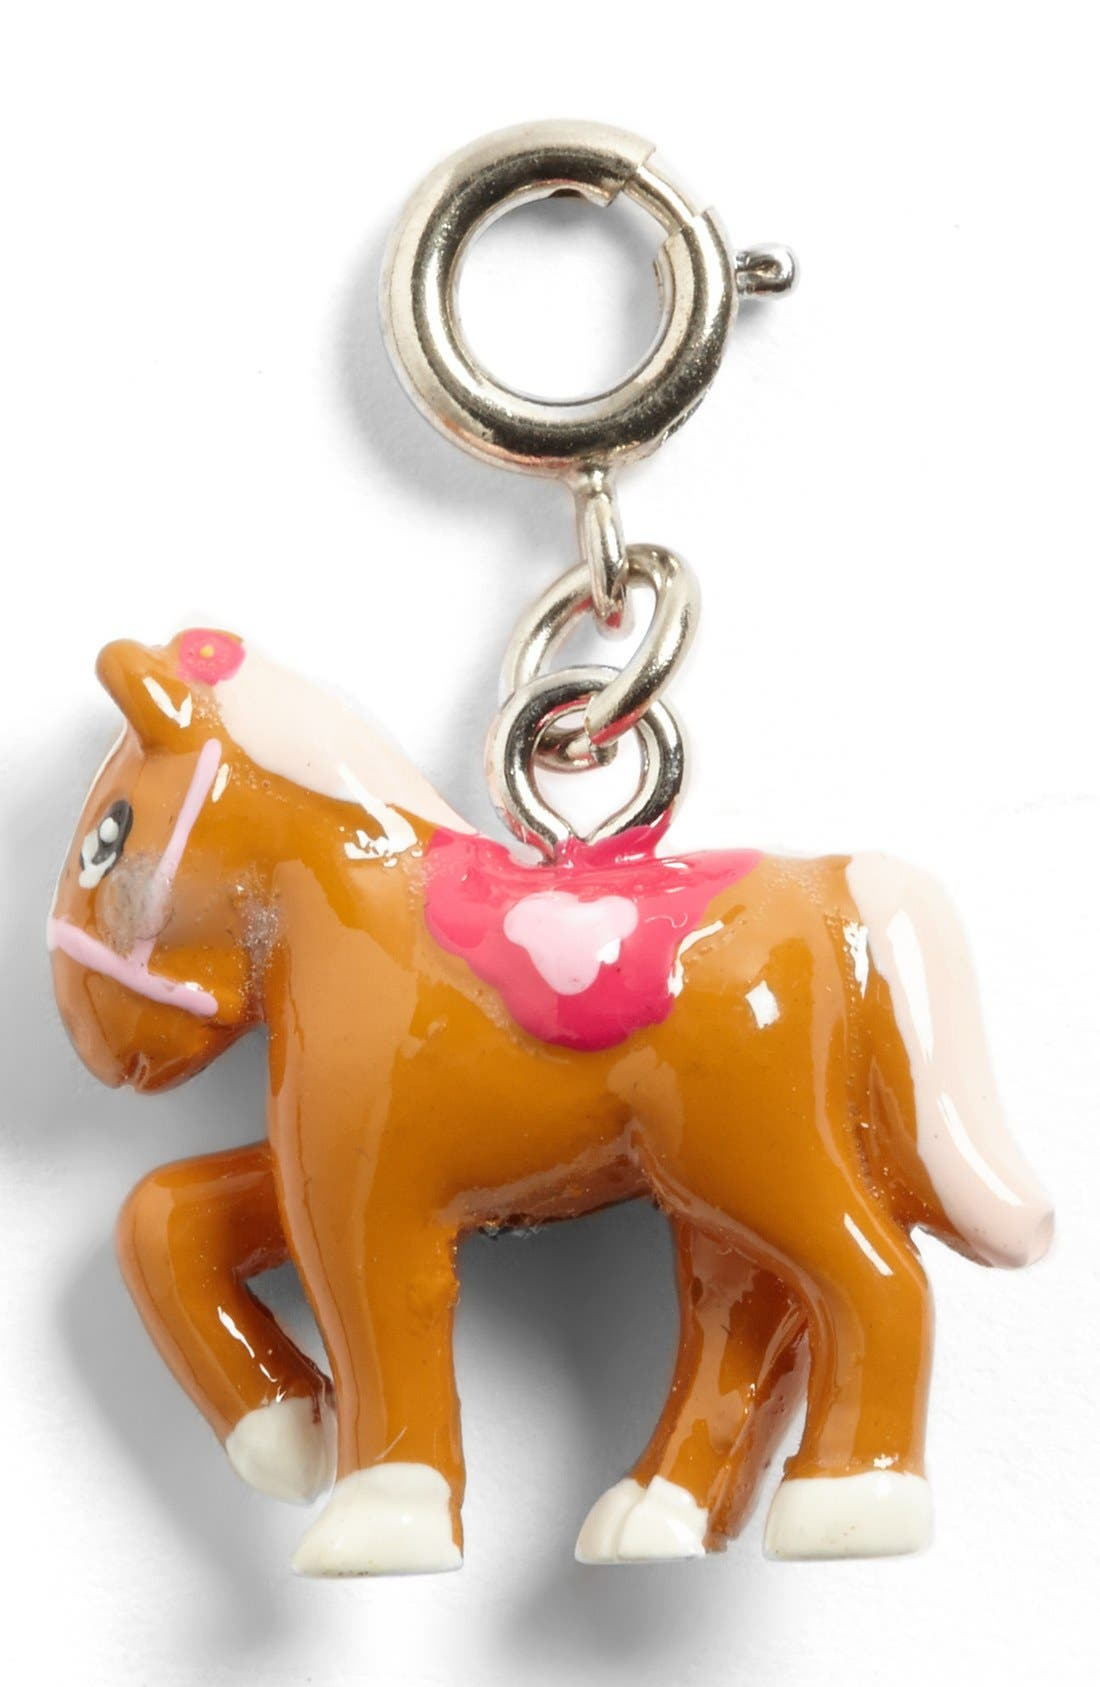 Alternate Image 1 Selected - CHARM IT!® 'Animal' Charm (Girls)